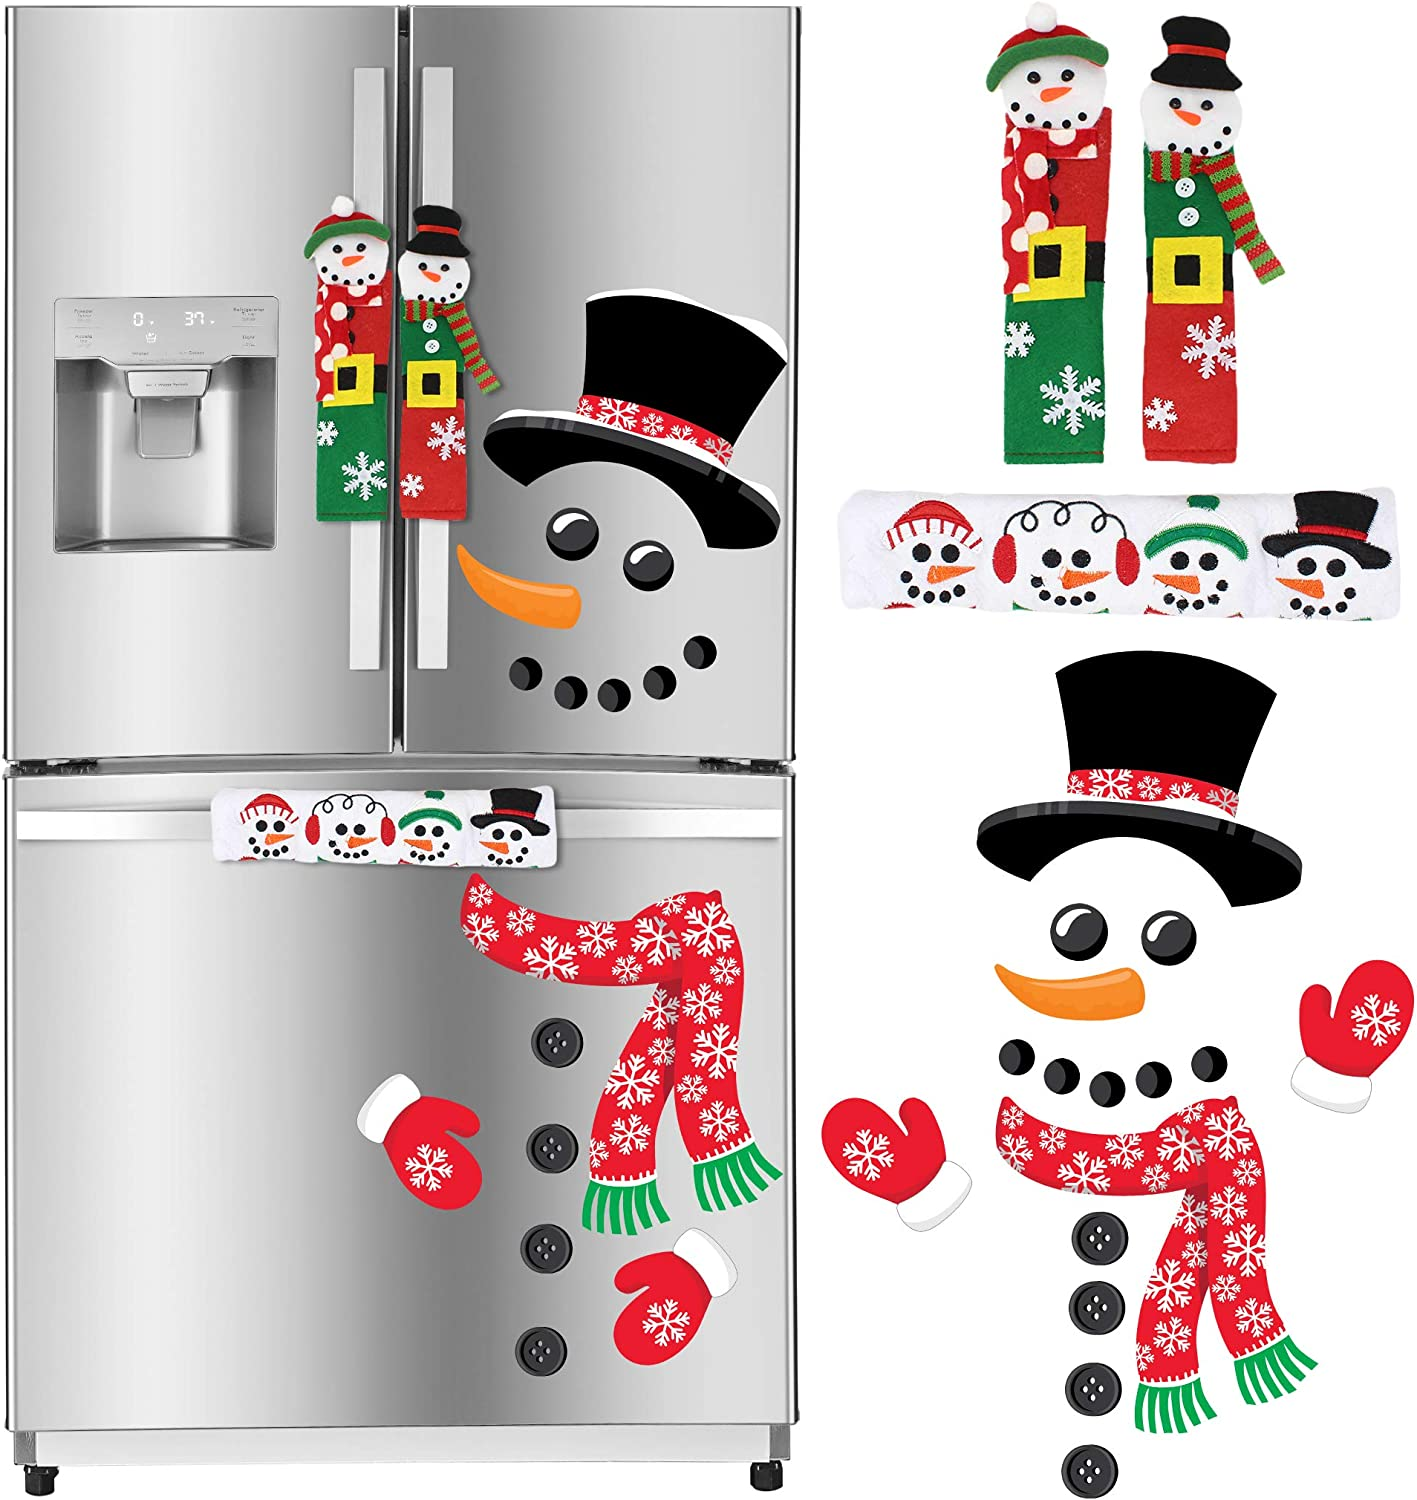 Christmas Kitchen Decorations, Snowman Handle Covers, Refrigerator Magnets for Christmas Indoor Décor, Party Favor Supplies